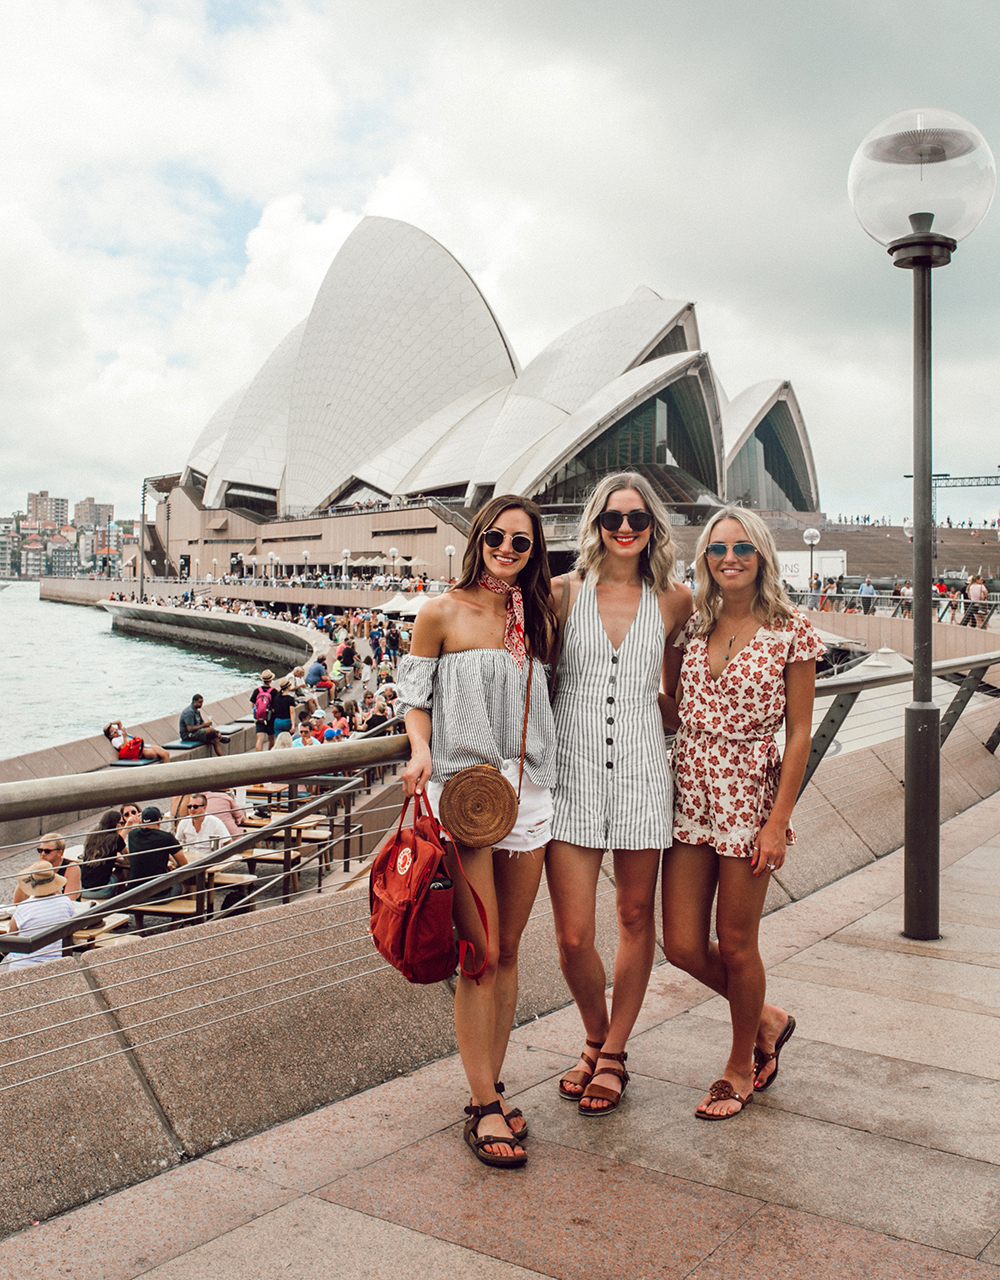 livvyland-blog-olivia-watson-austin-texas-fashion-travel-lifestyle-blogger-sydney-melbourne-australia-opera-house-bar-girl-friends-1